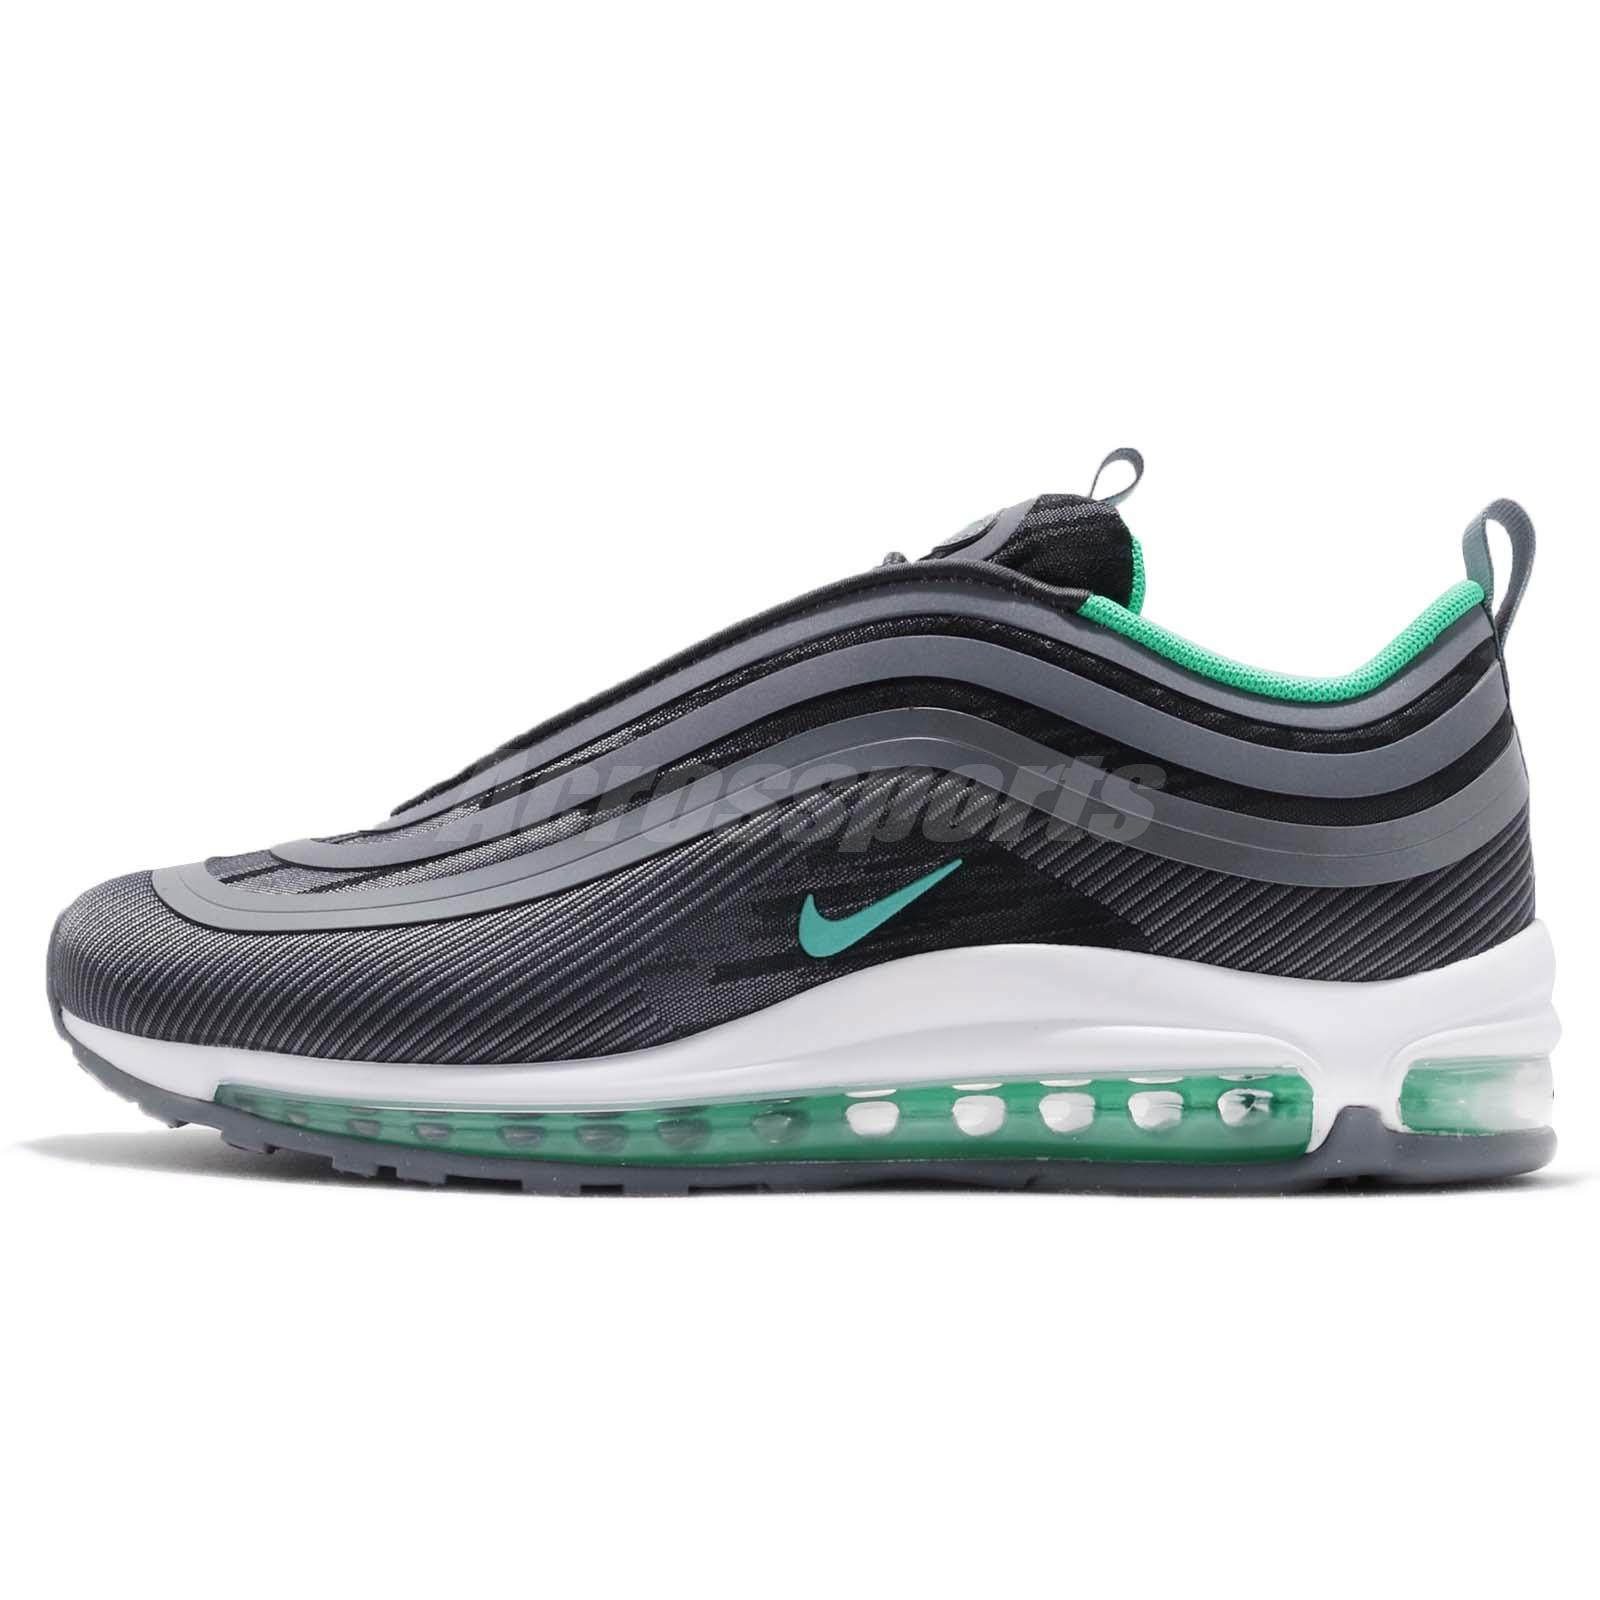 d7ad2cfa6f Nike Air Max 97 UL 17 Anthracite Menta Men Running Shoes Sneakers 918356-009